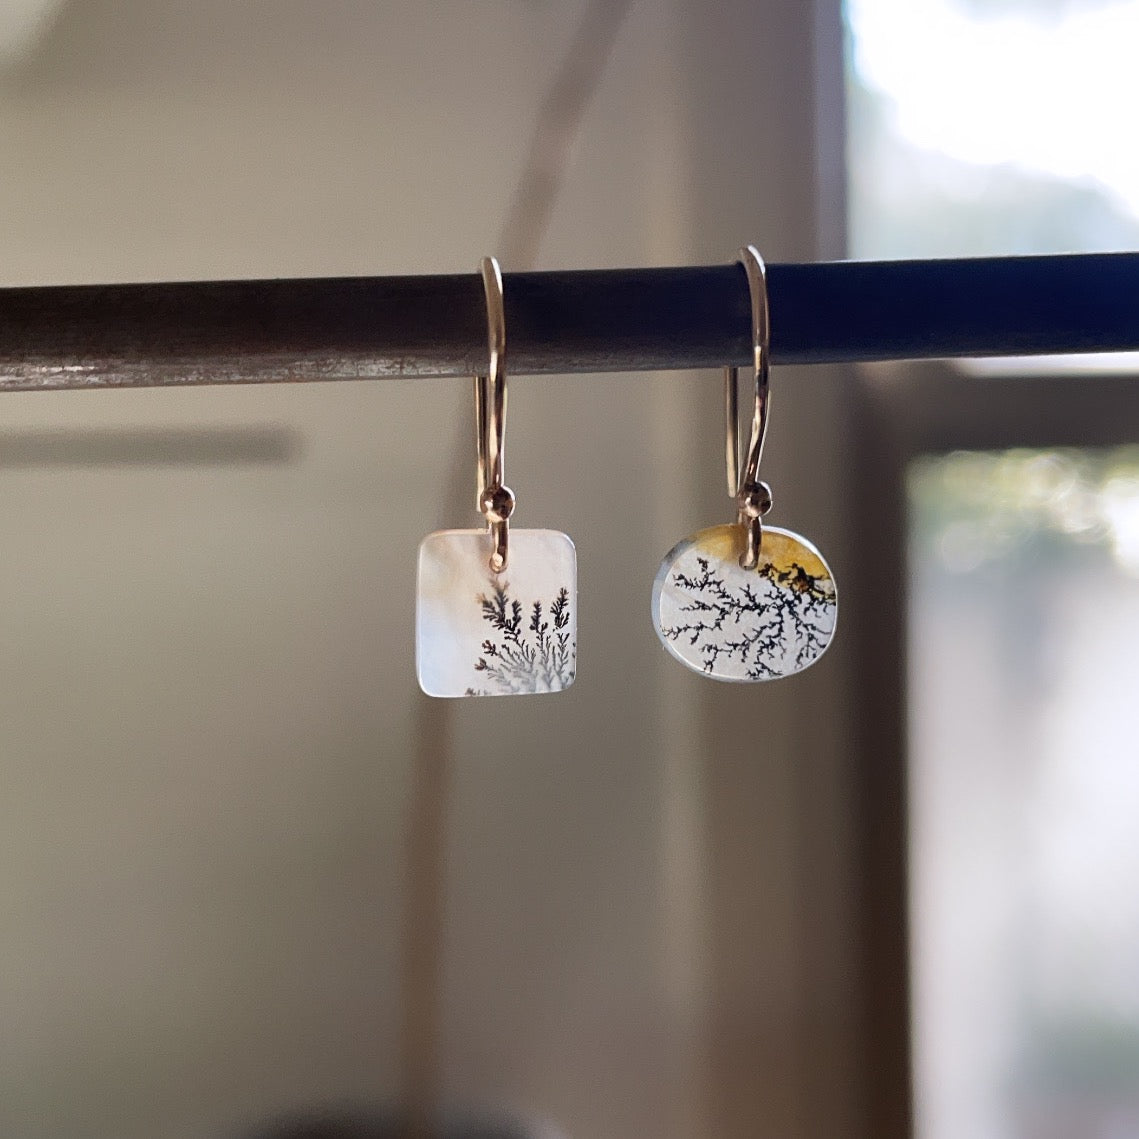 Reaching out dendritic agate earrings-serena kojimoto studio